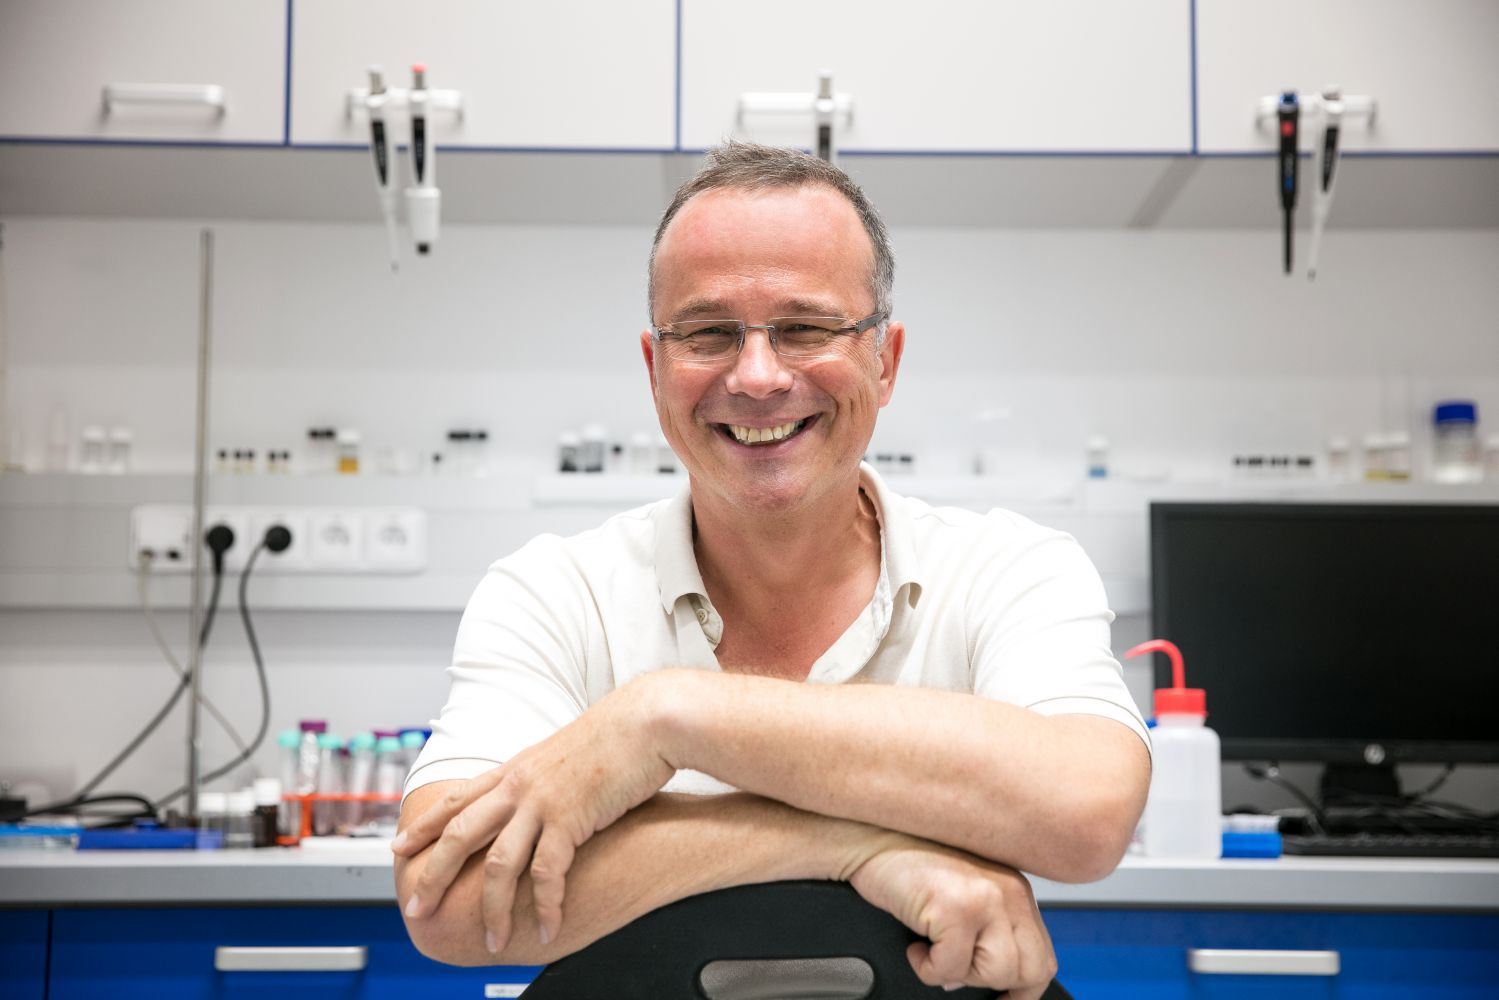 Dr Martin Pumera, who founded Advanced Functional Nanorobots